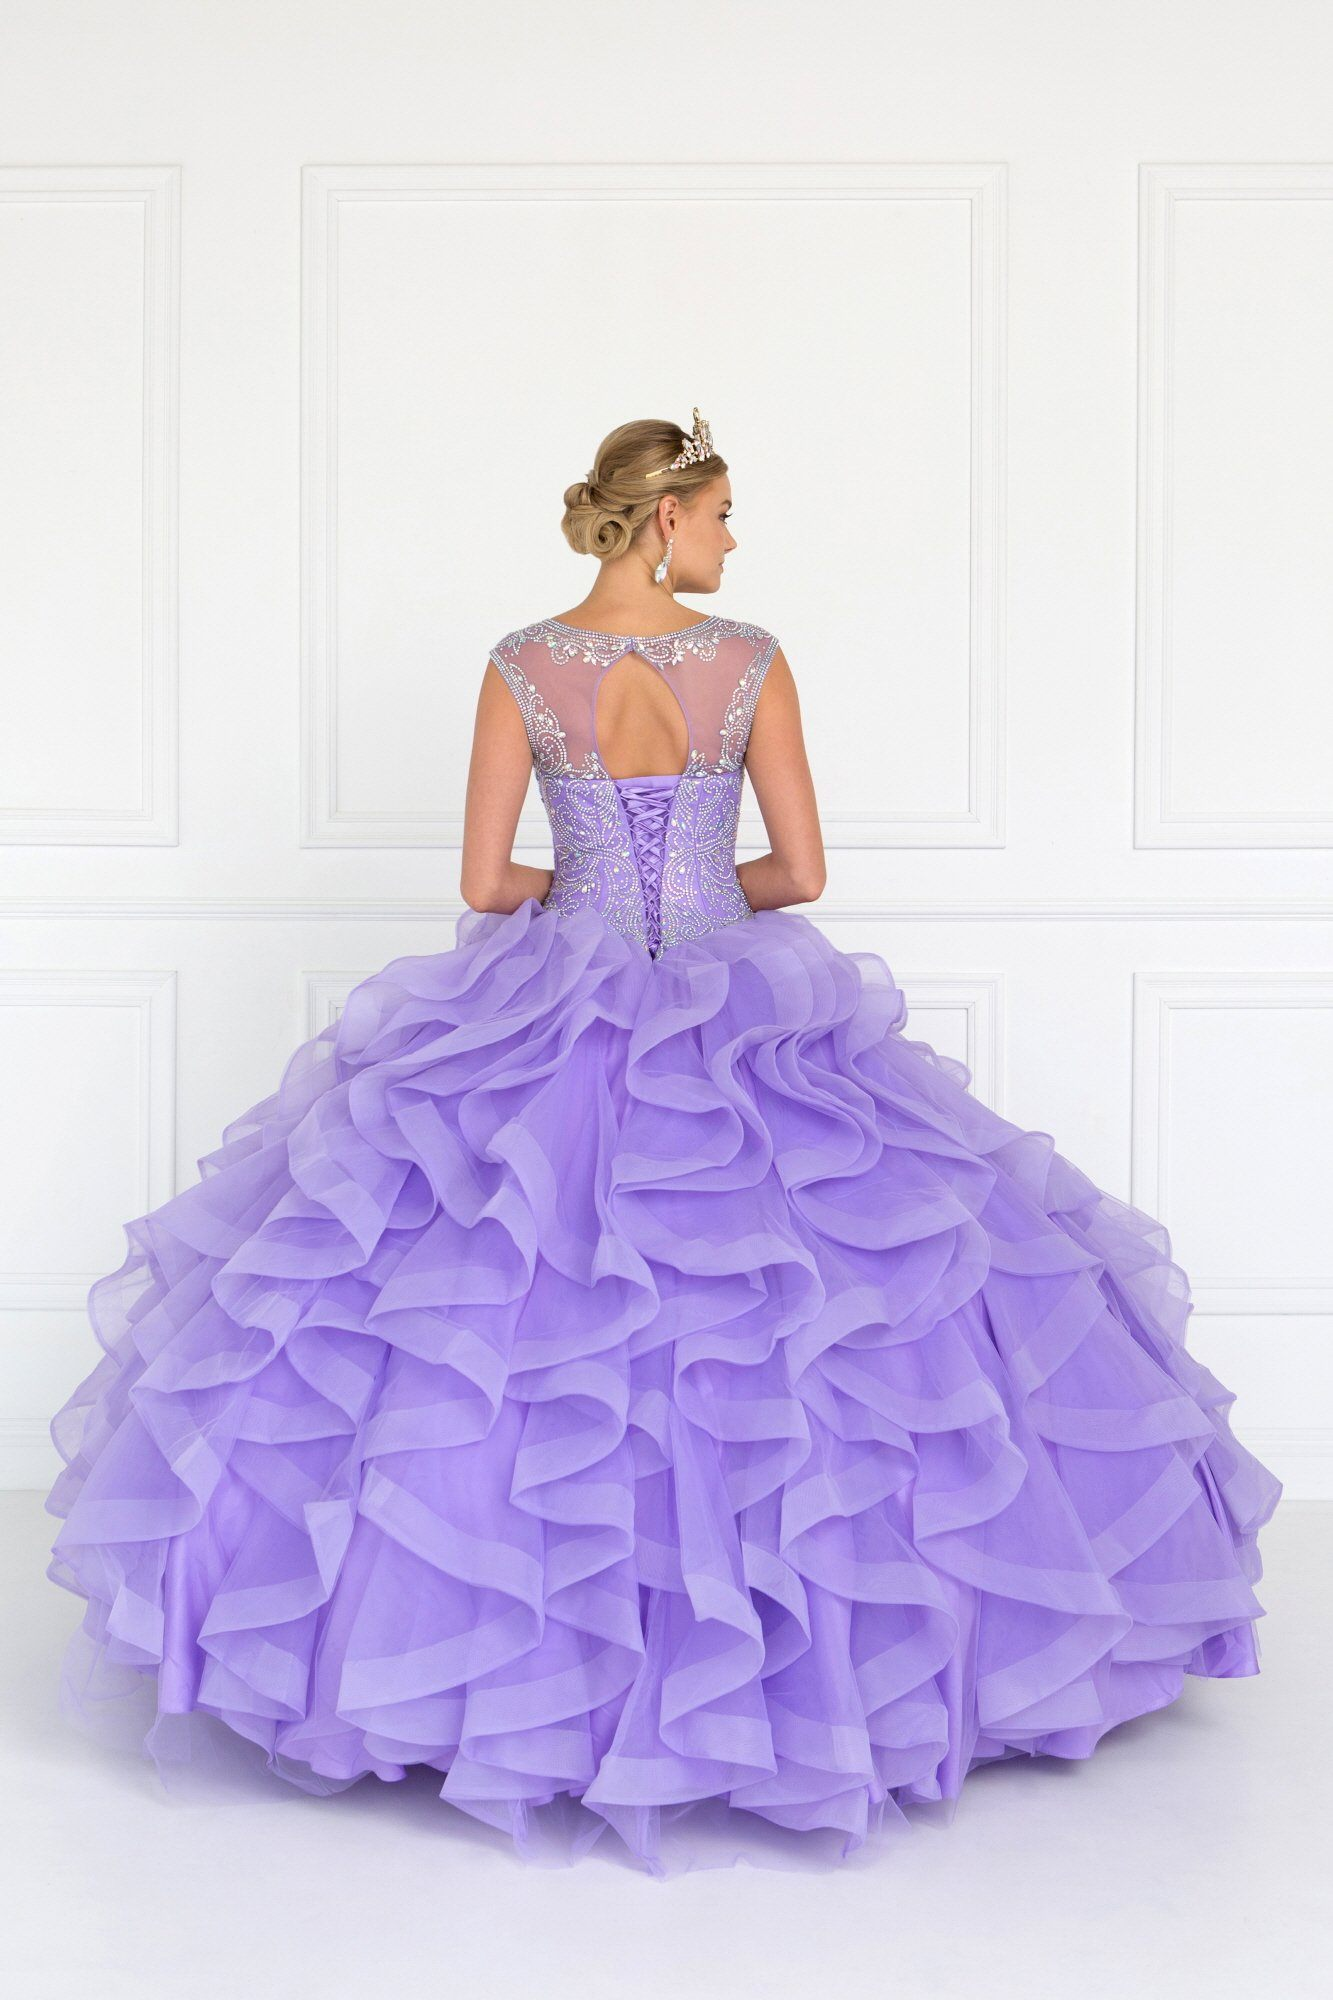 de94db24234 ... Beautiful purple quinceanera dress GLS 1555-Simply Fab Dress ...